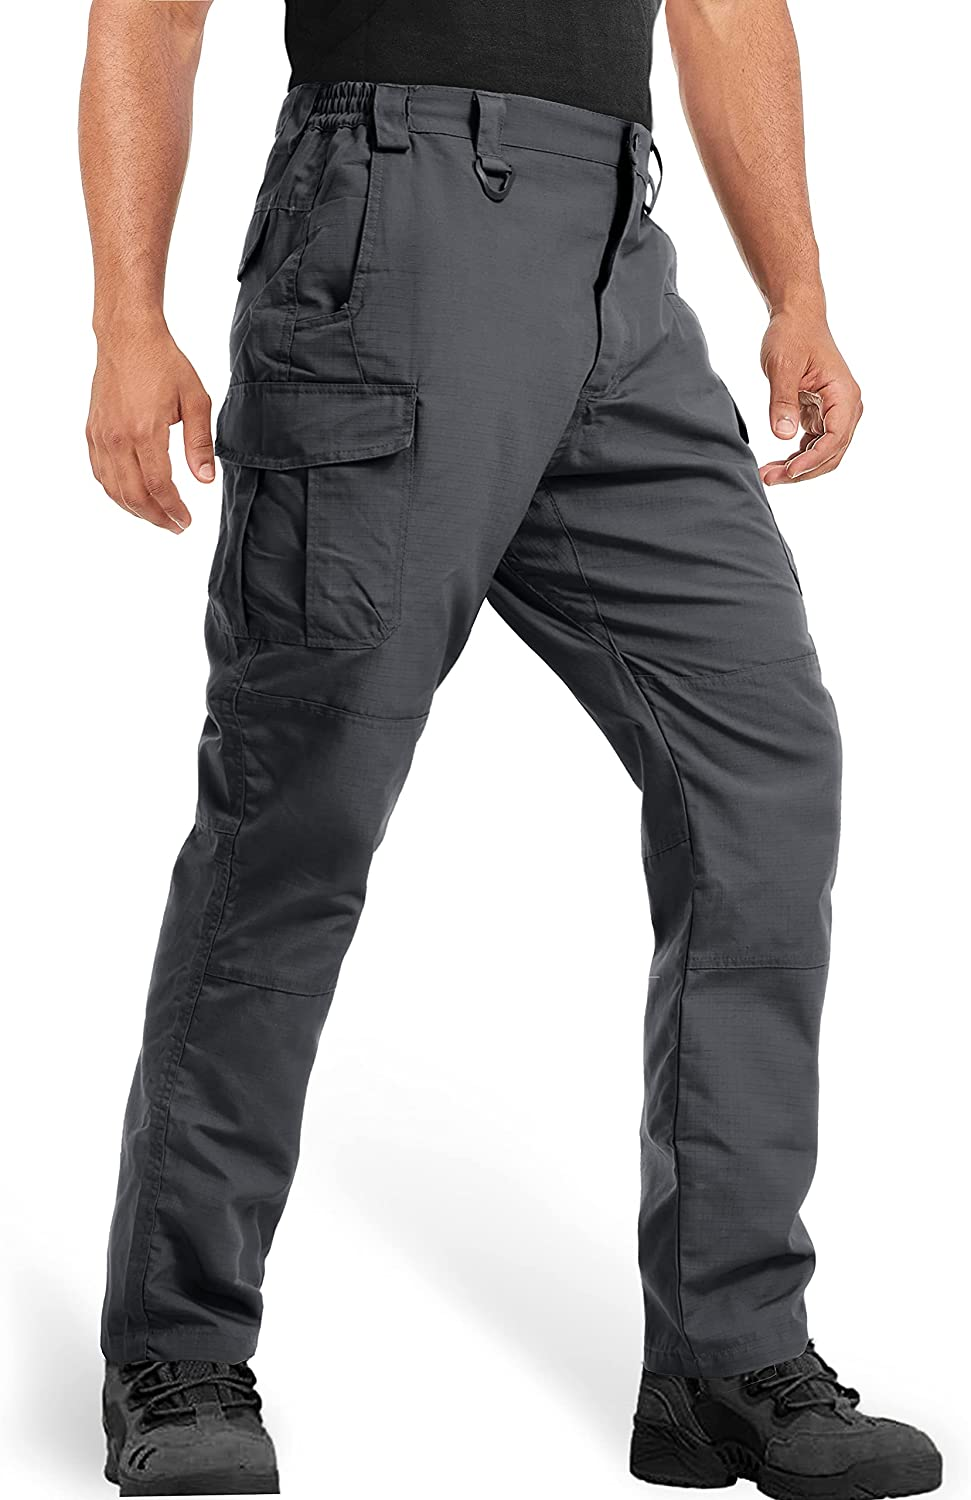 MAGCOMSEN Men's Tactical Pants 9 Pockets Ripstop, Water Repellent, Cargo Pants for Work, Hiking, Hunting : Sports & Outdoors